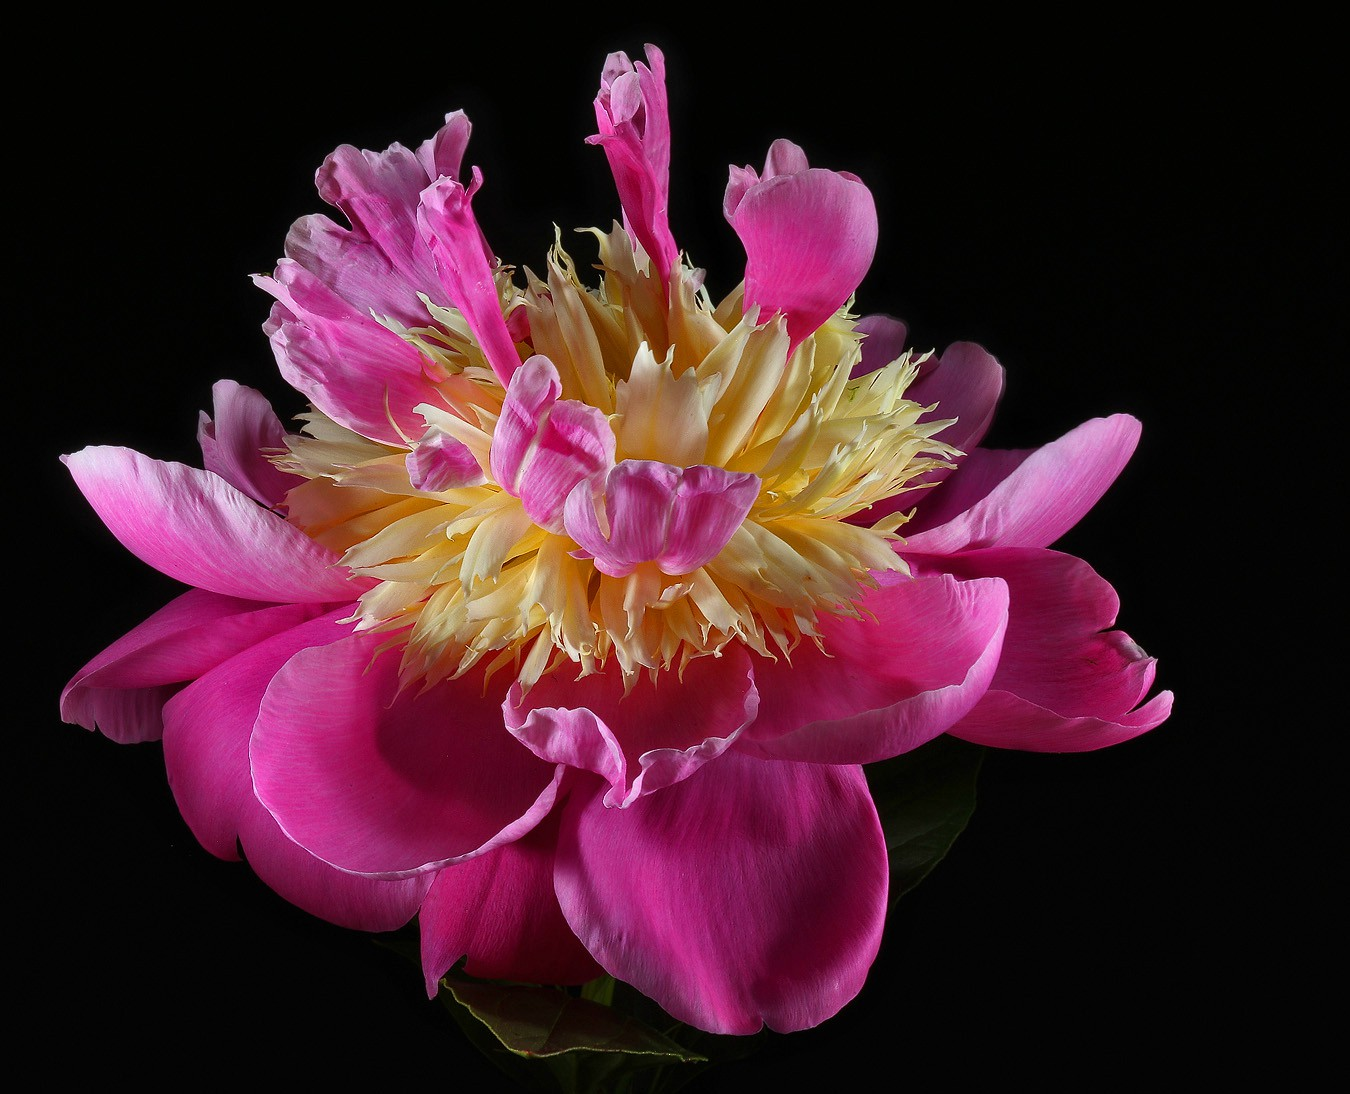 other peony img aw author sava gregory and verena